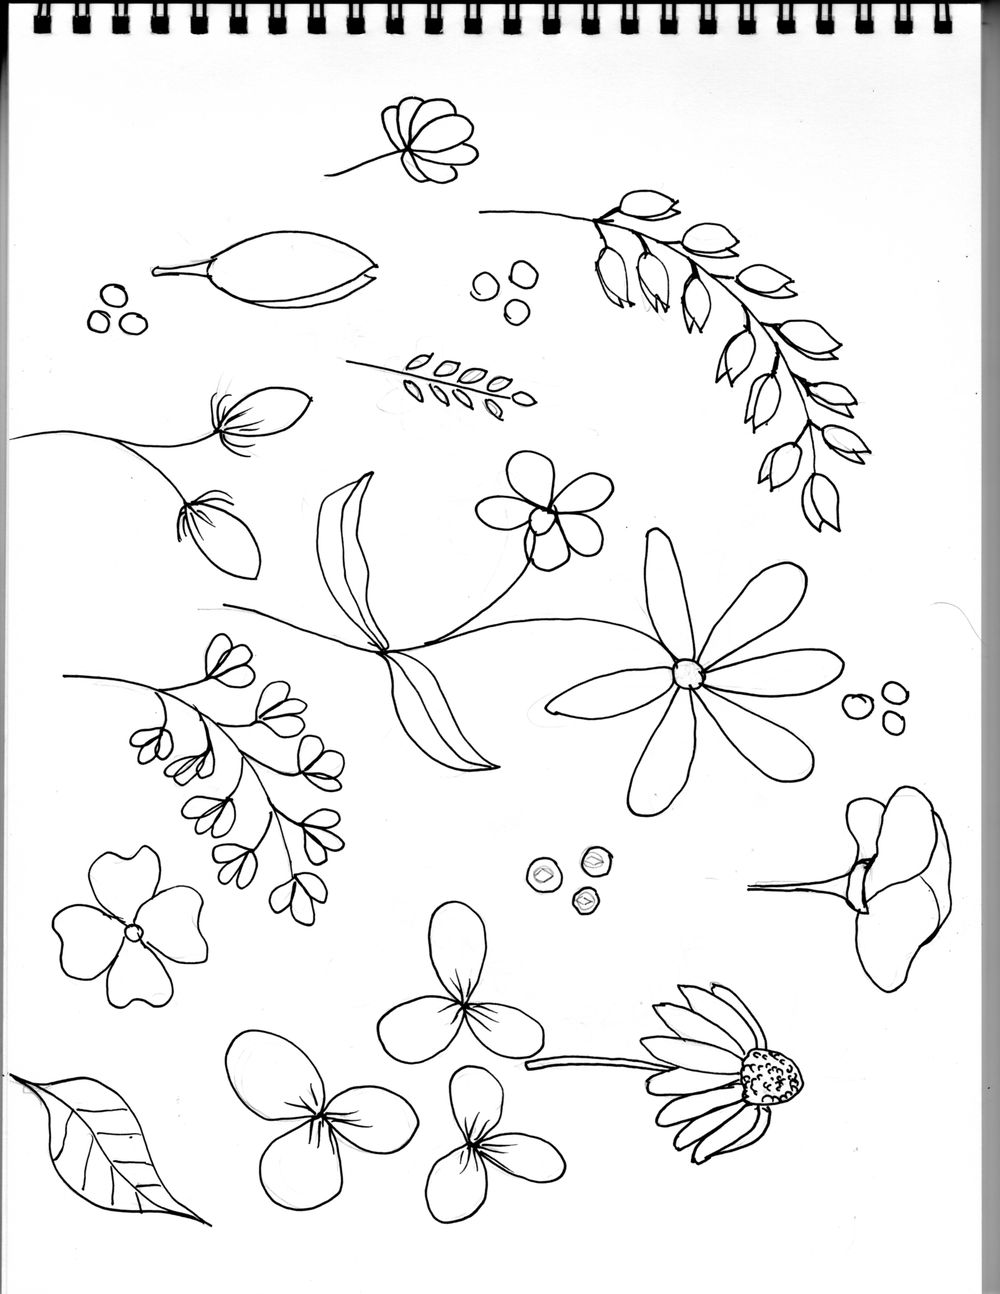 Notecard Work in Progress Images - image 1 - student project